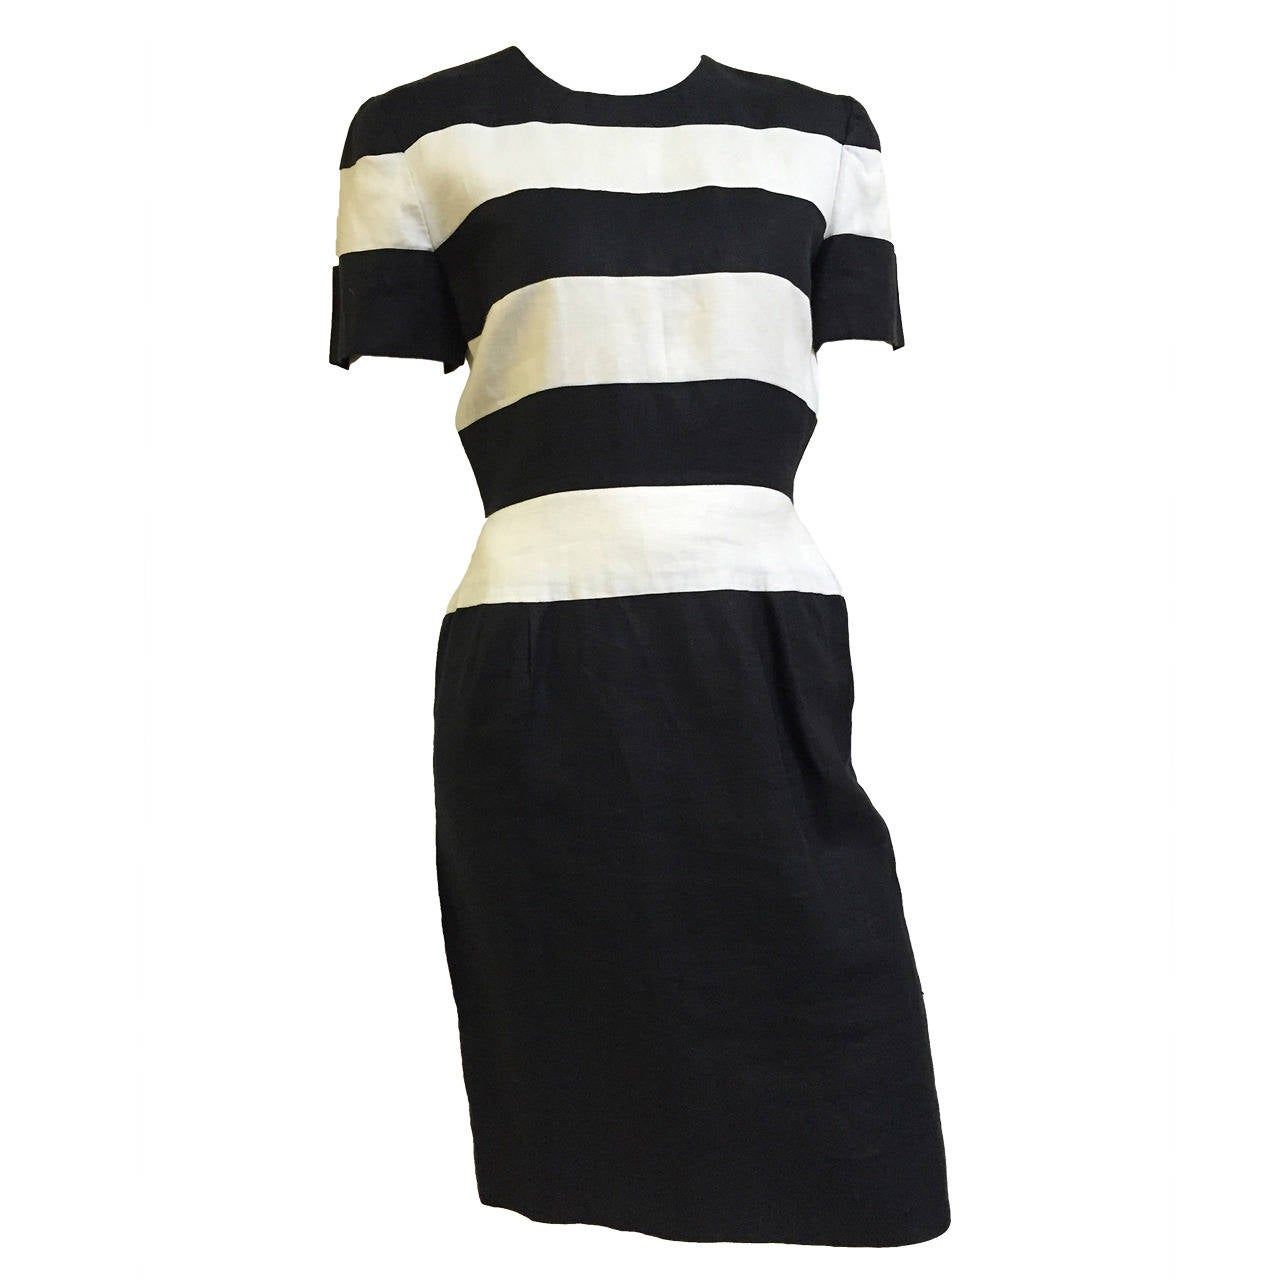 Scaasi Navy and White Linen striped Sheath Dress, Size 4